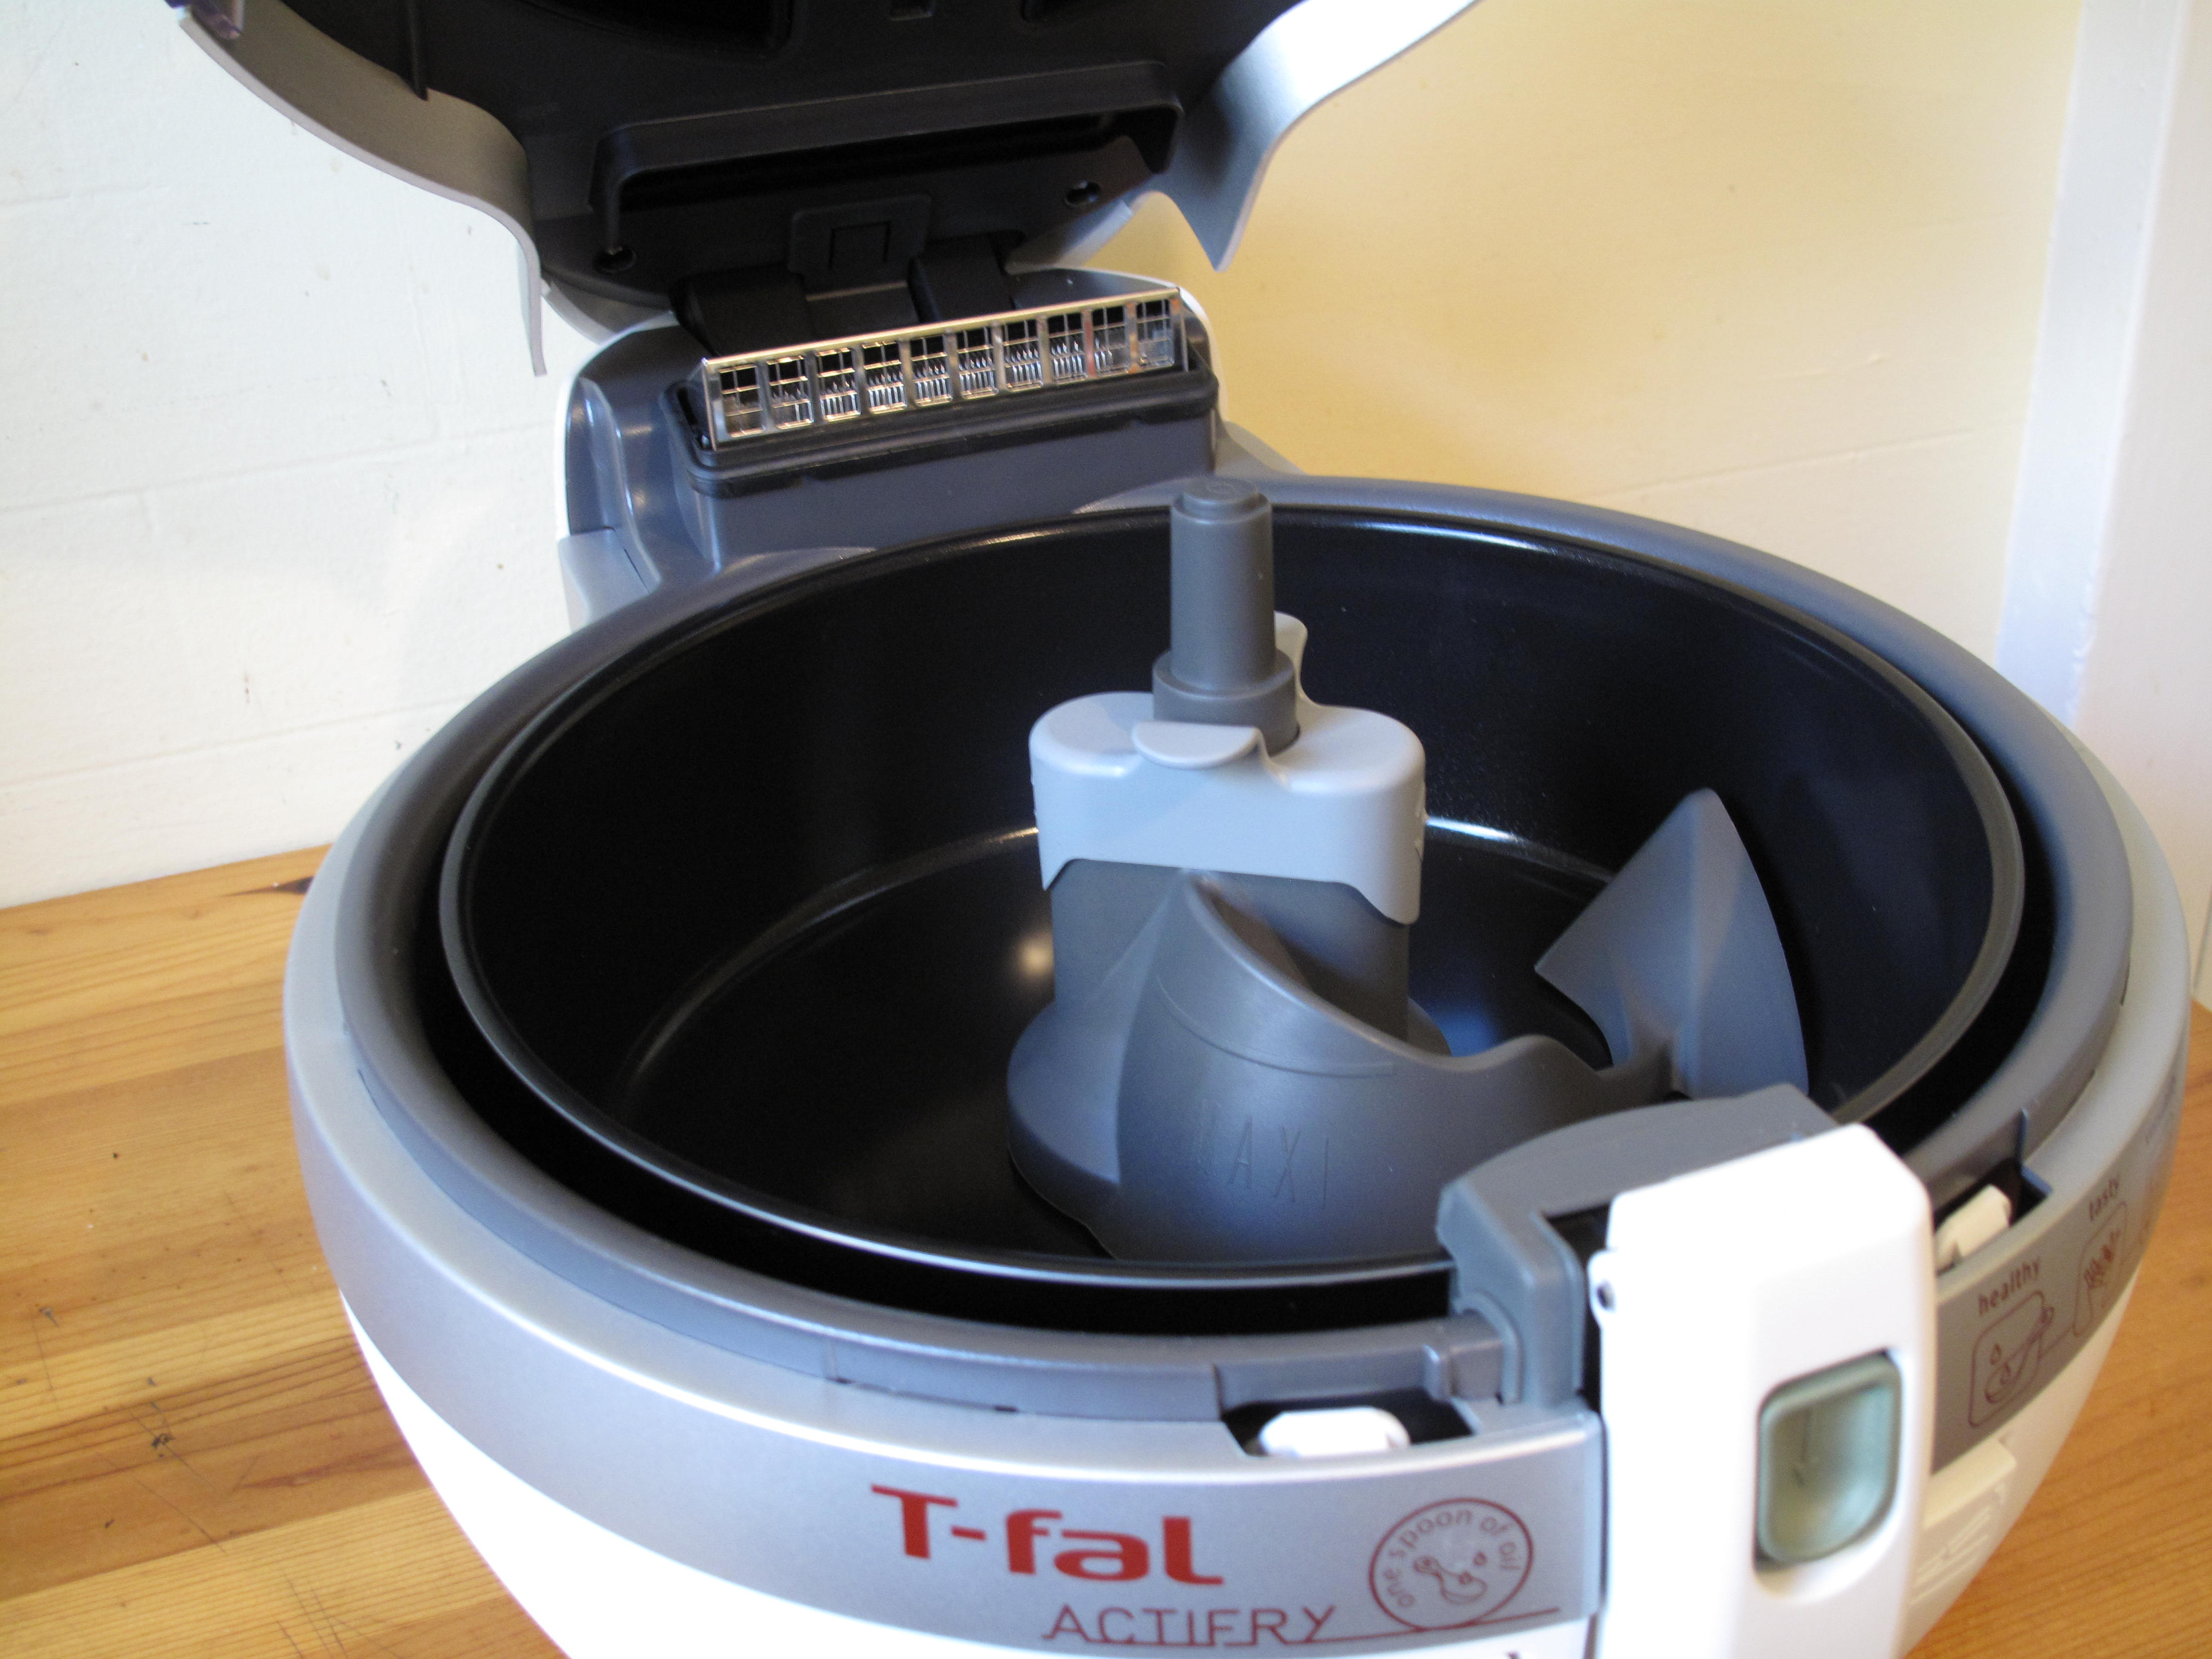 The inside of the Actifry is equipped with a removable paddle that stirs constantly when the machine is on.